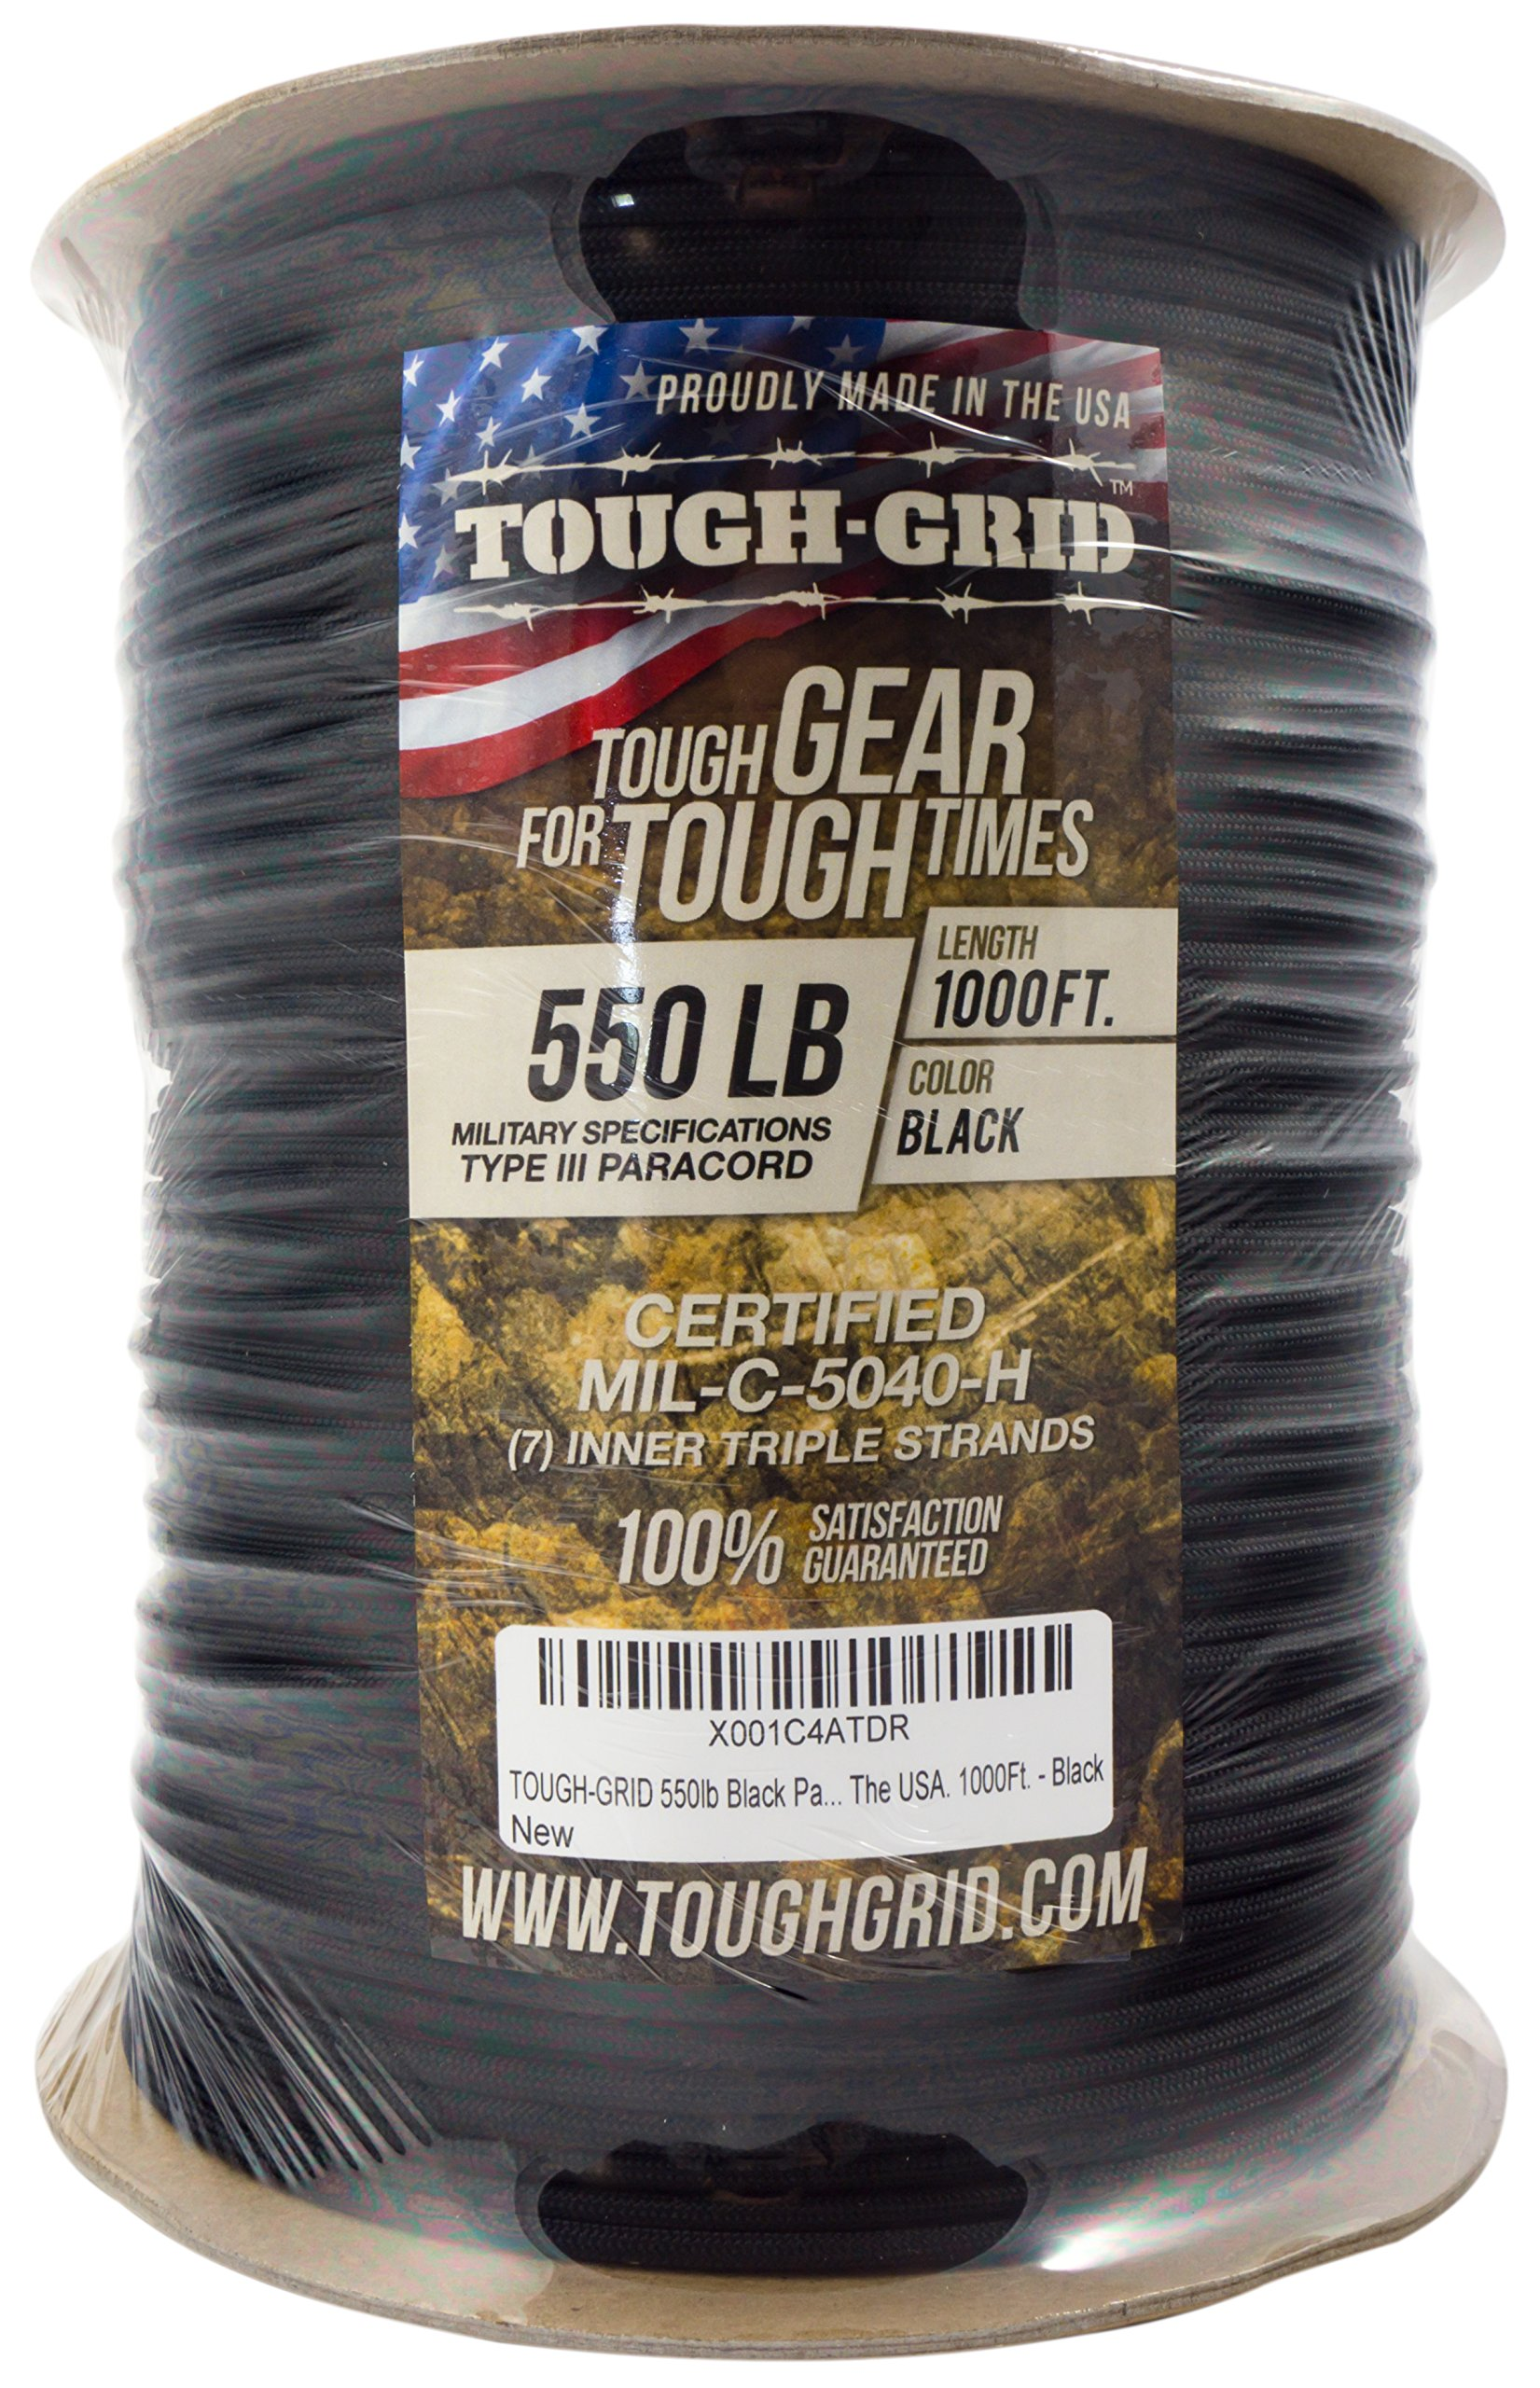 TOUGH-GRID 550lb Black Paracord/Parachute Cord - 100% Nylon Genuine Mil-Spec Type III Paracord Used by The US Military - Great for Bracelets and Lanyards - Made in The USA. 50Ft. - Black by TOUGH-GRID (Image #10)